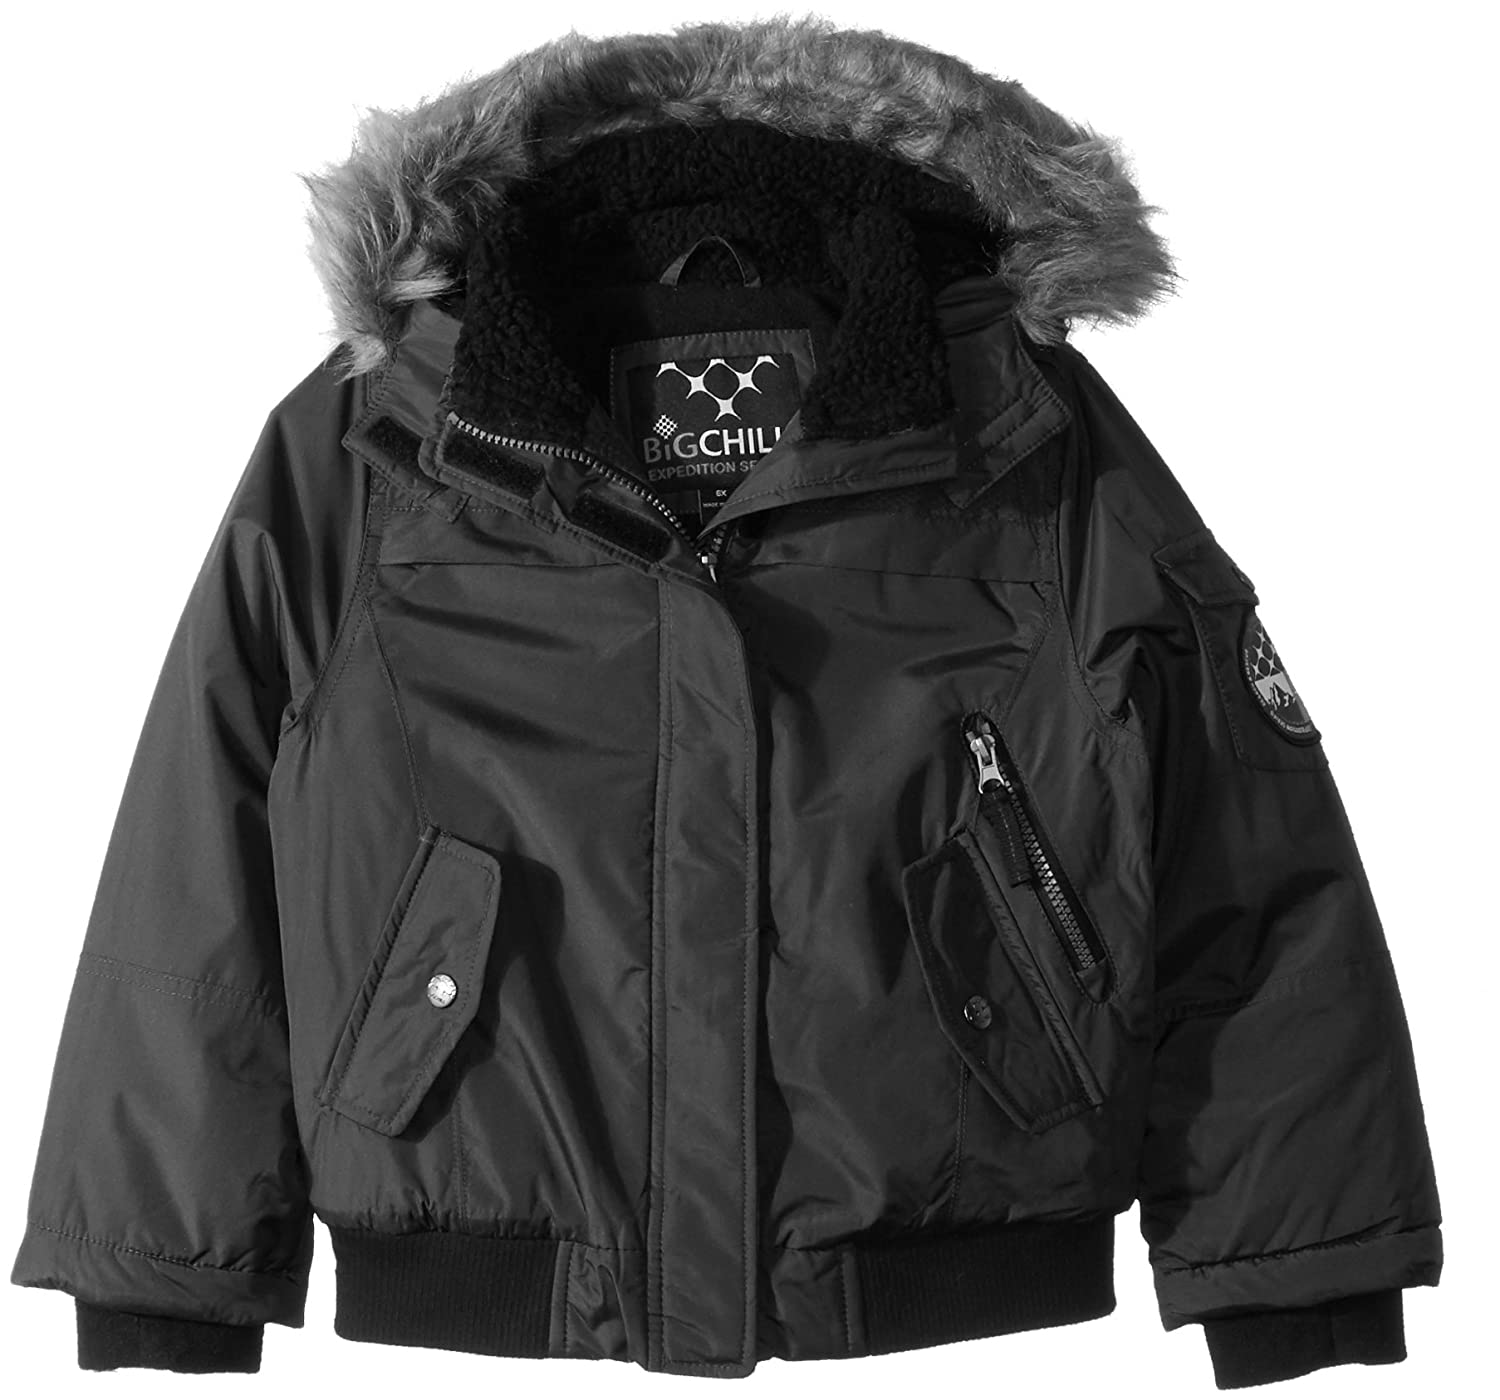 Big Chill Girls Expedition Bomber